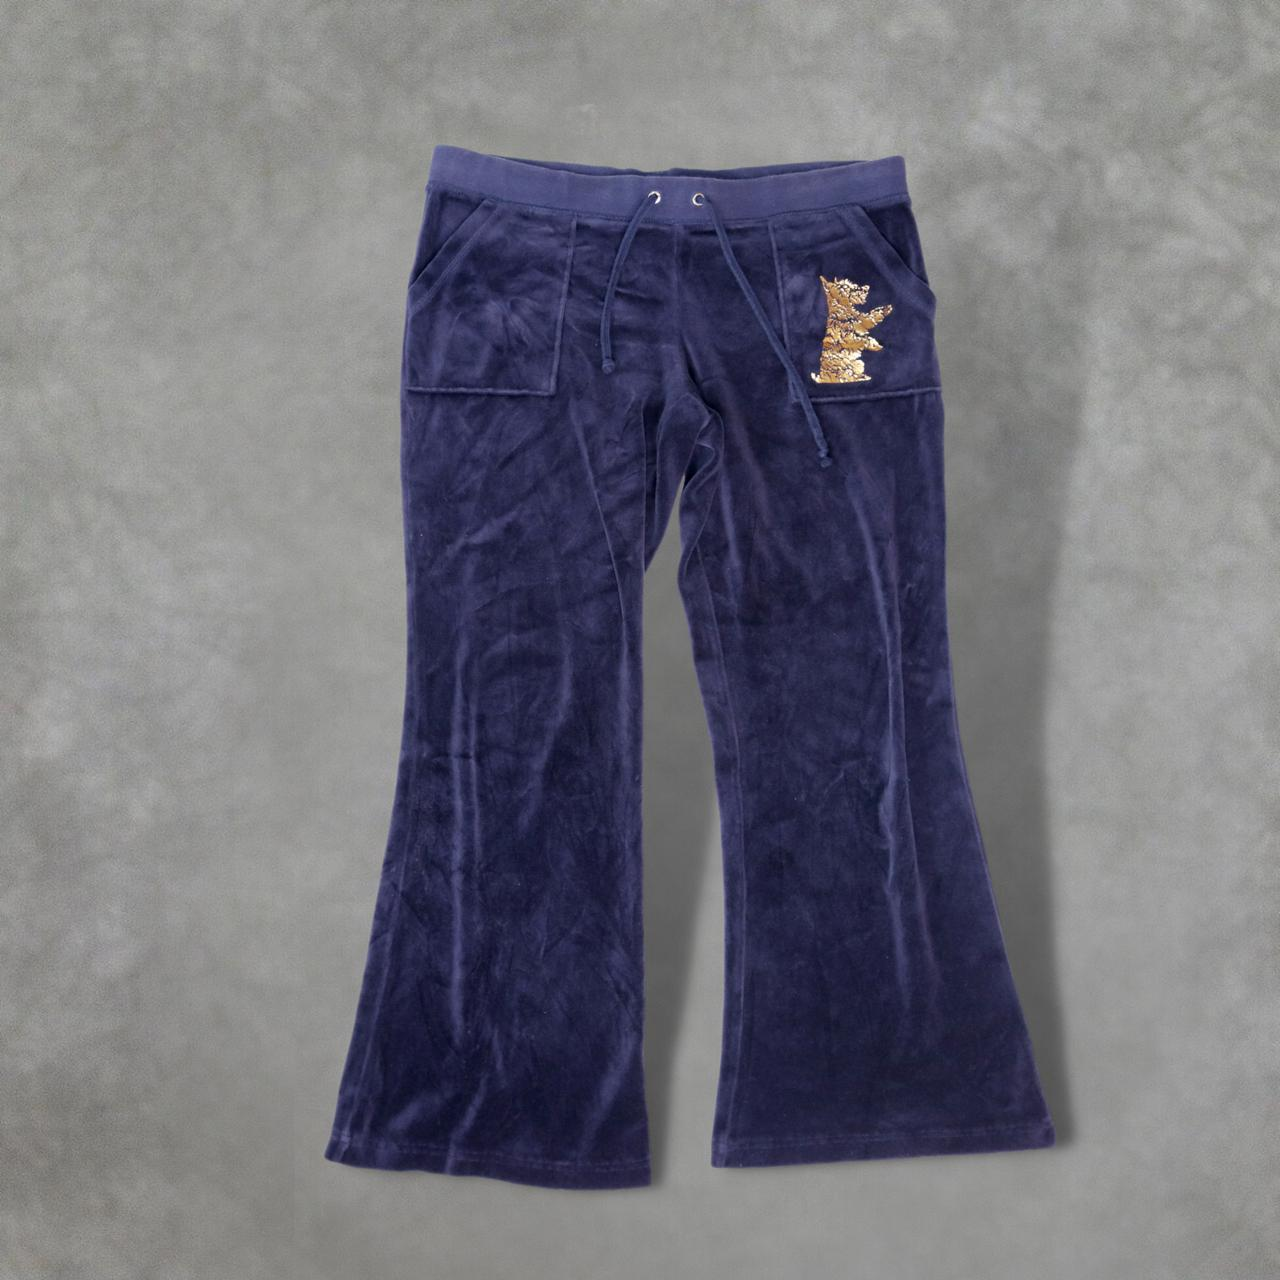 Product Image 1 - The Puppy Love Sweatpants! By